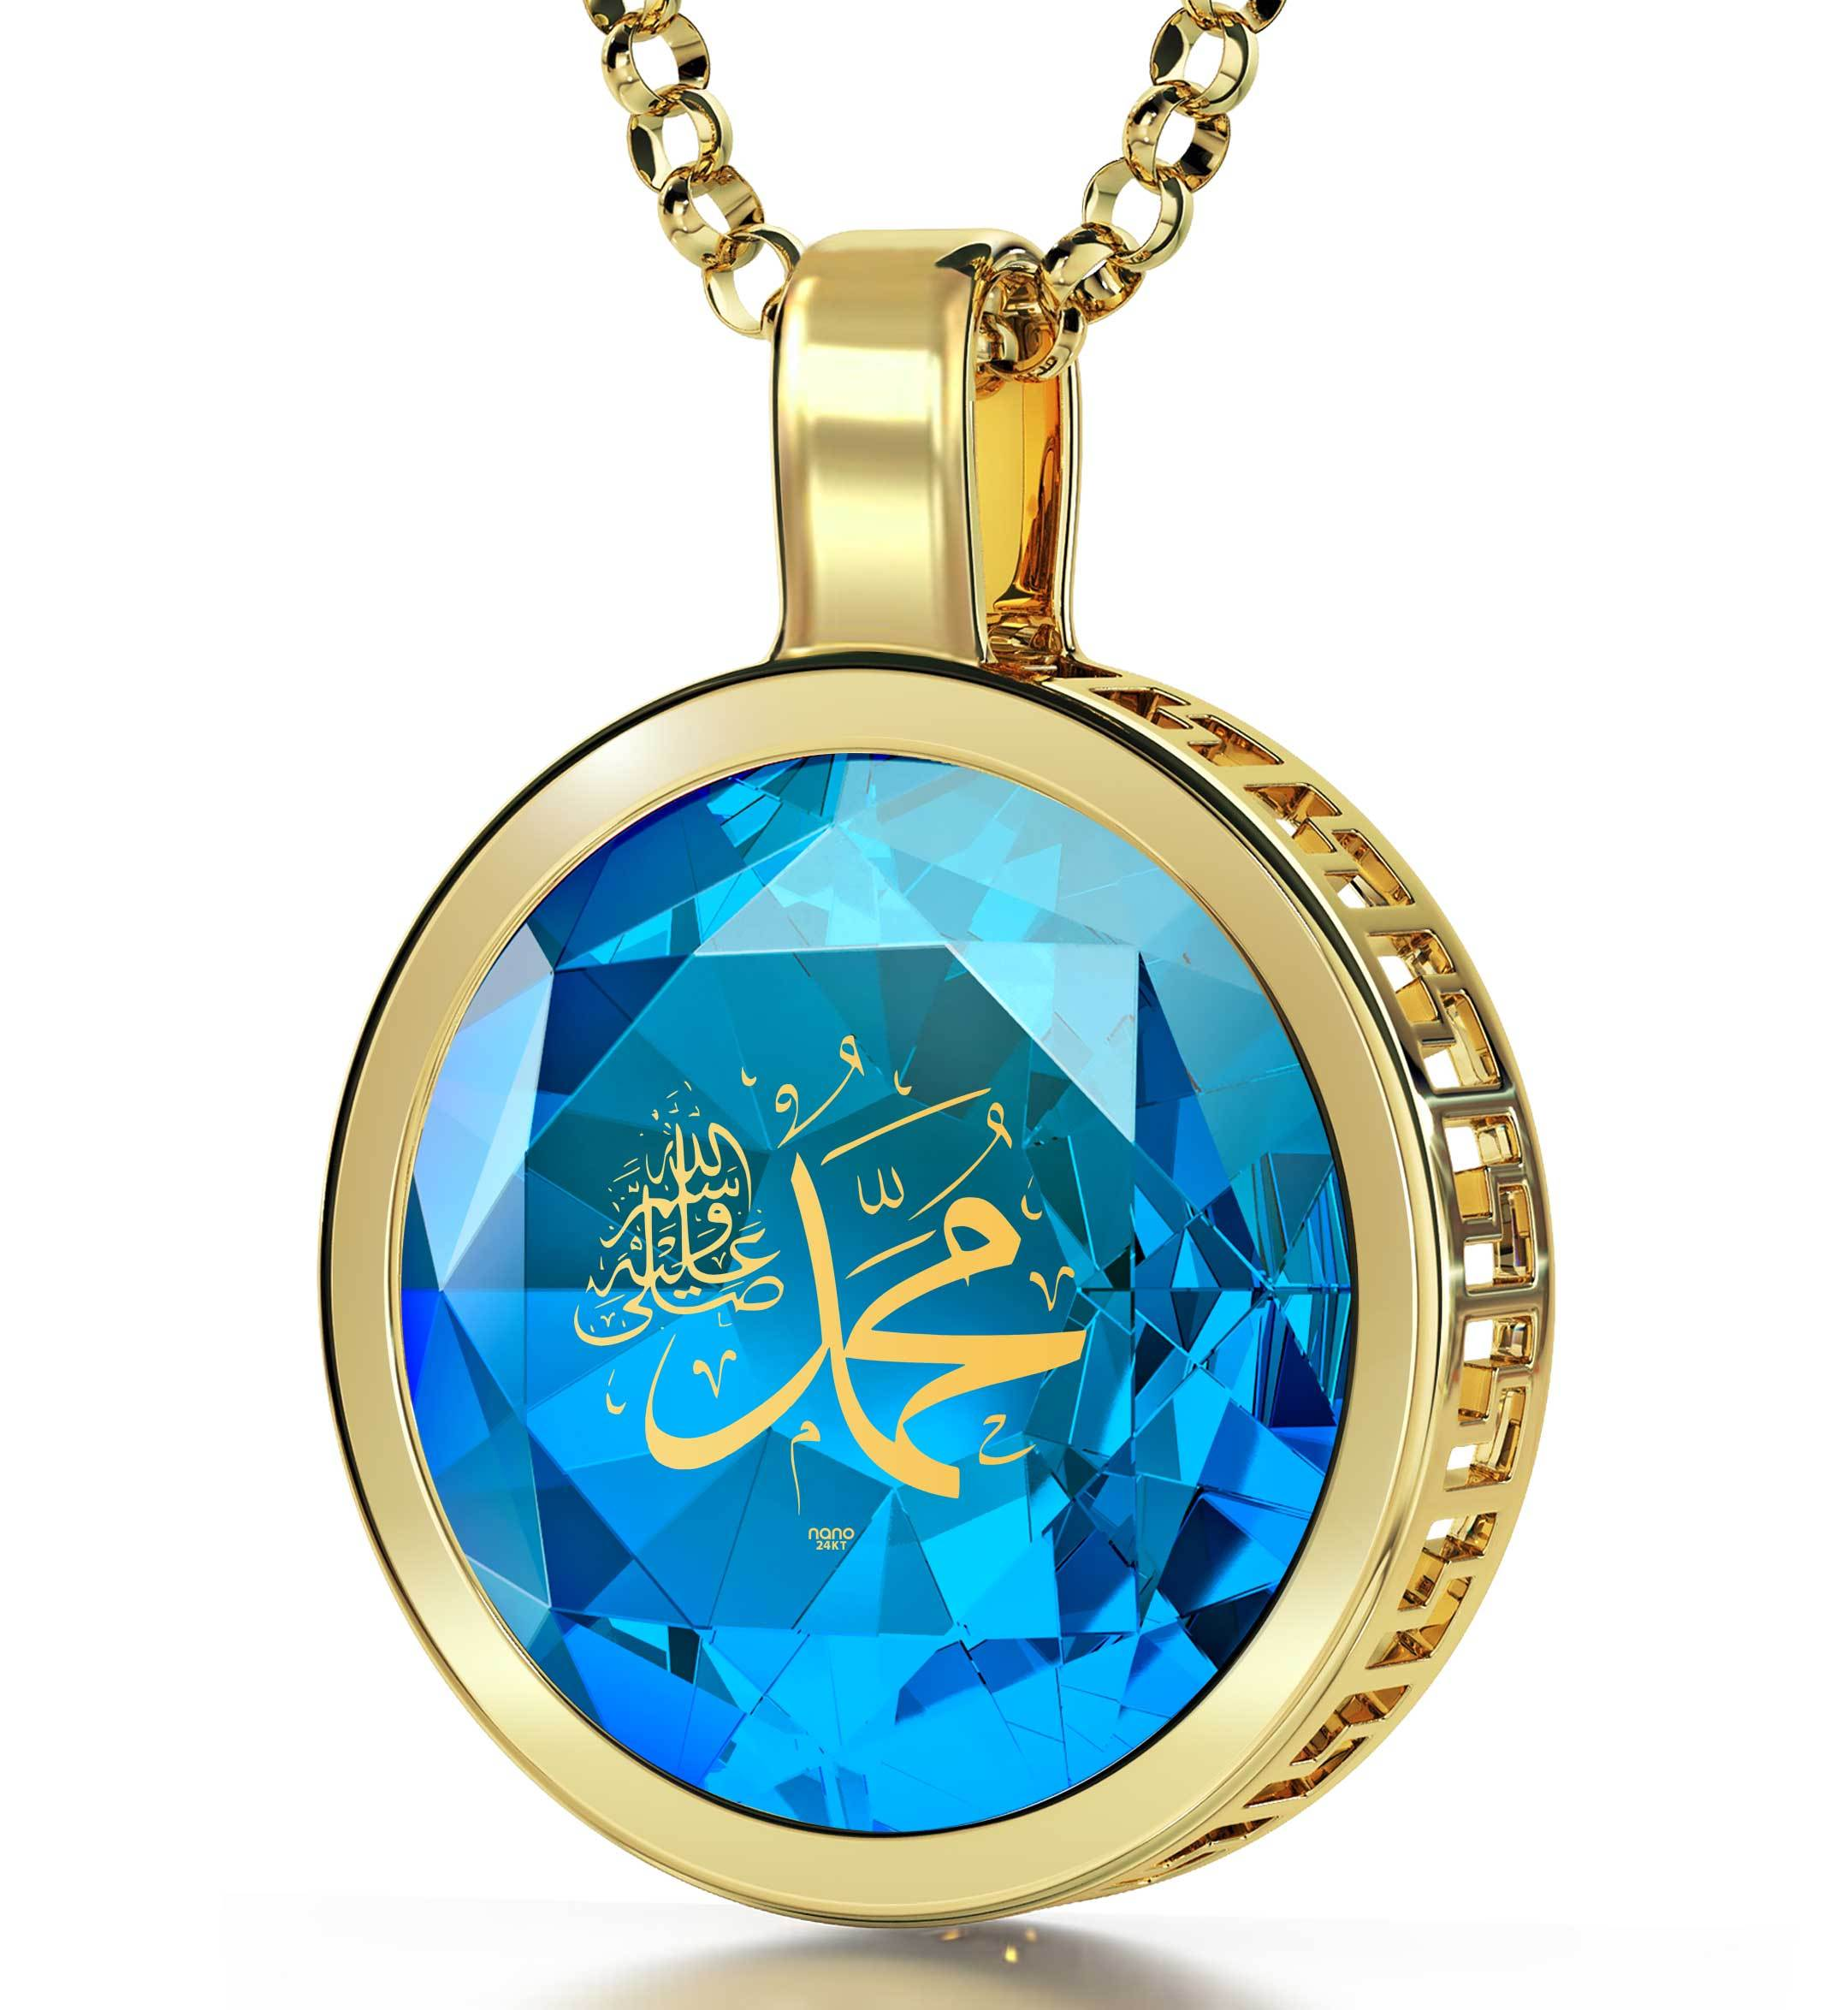 """Muhammad"" Engraved in 24k, Muslim Jewelry for Her, Islamic Gifts, 14kt Gold Necklace"